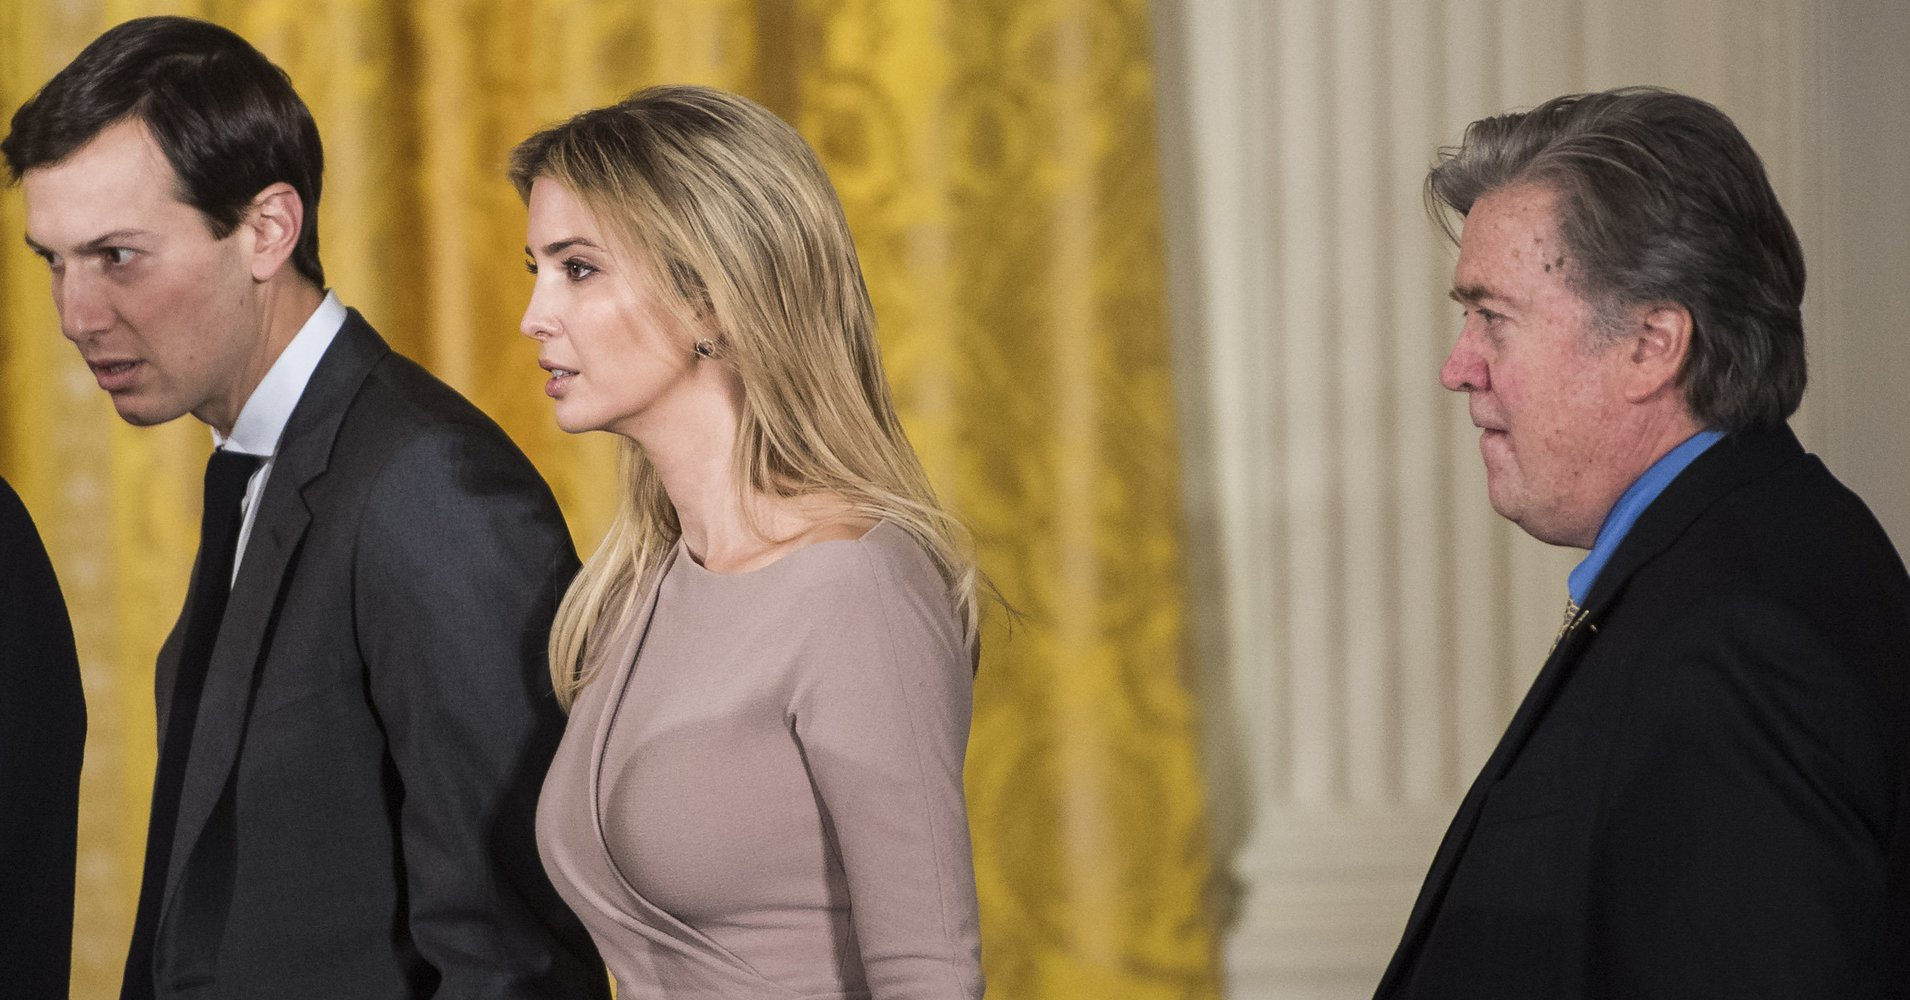 Steve Bannon reportedly calls Jared Kushner and Ivanka Trump 'Javanka' behind their backs https://t.co/XCWr7LKMQO https://t.co/CGW7xMaUyW